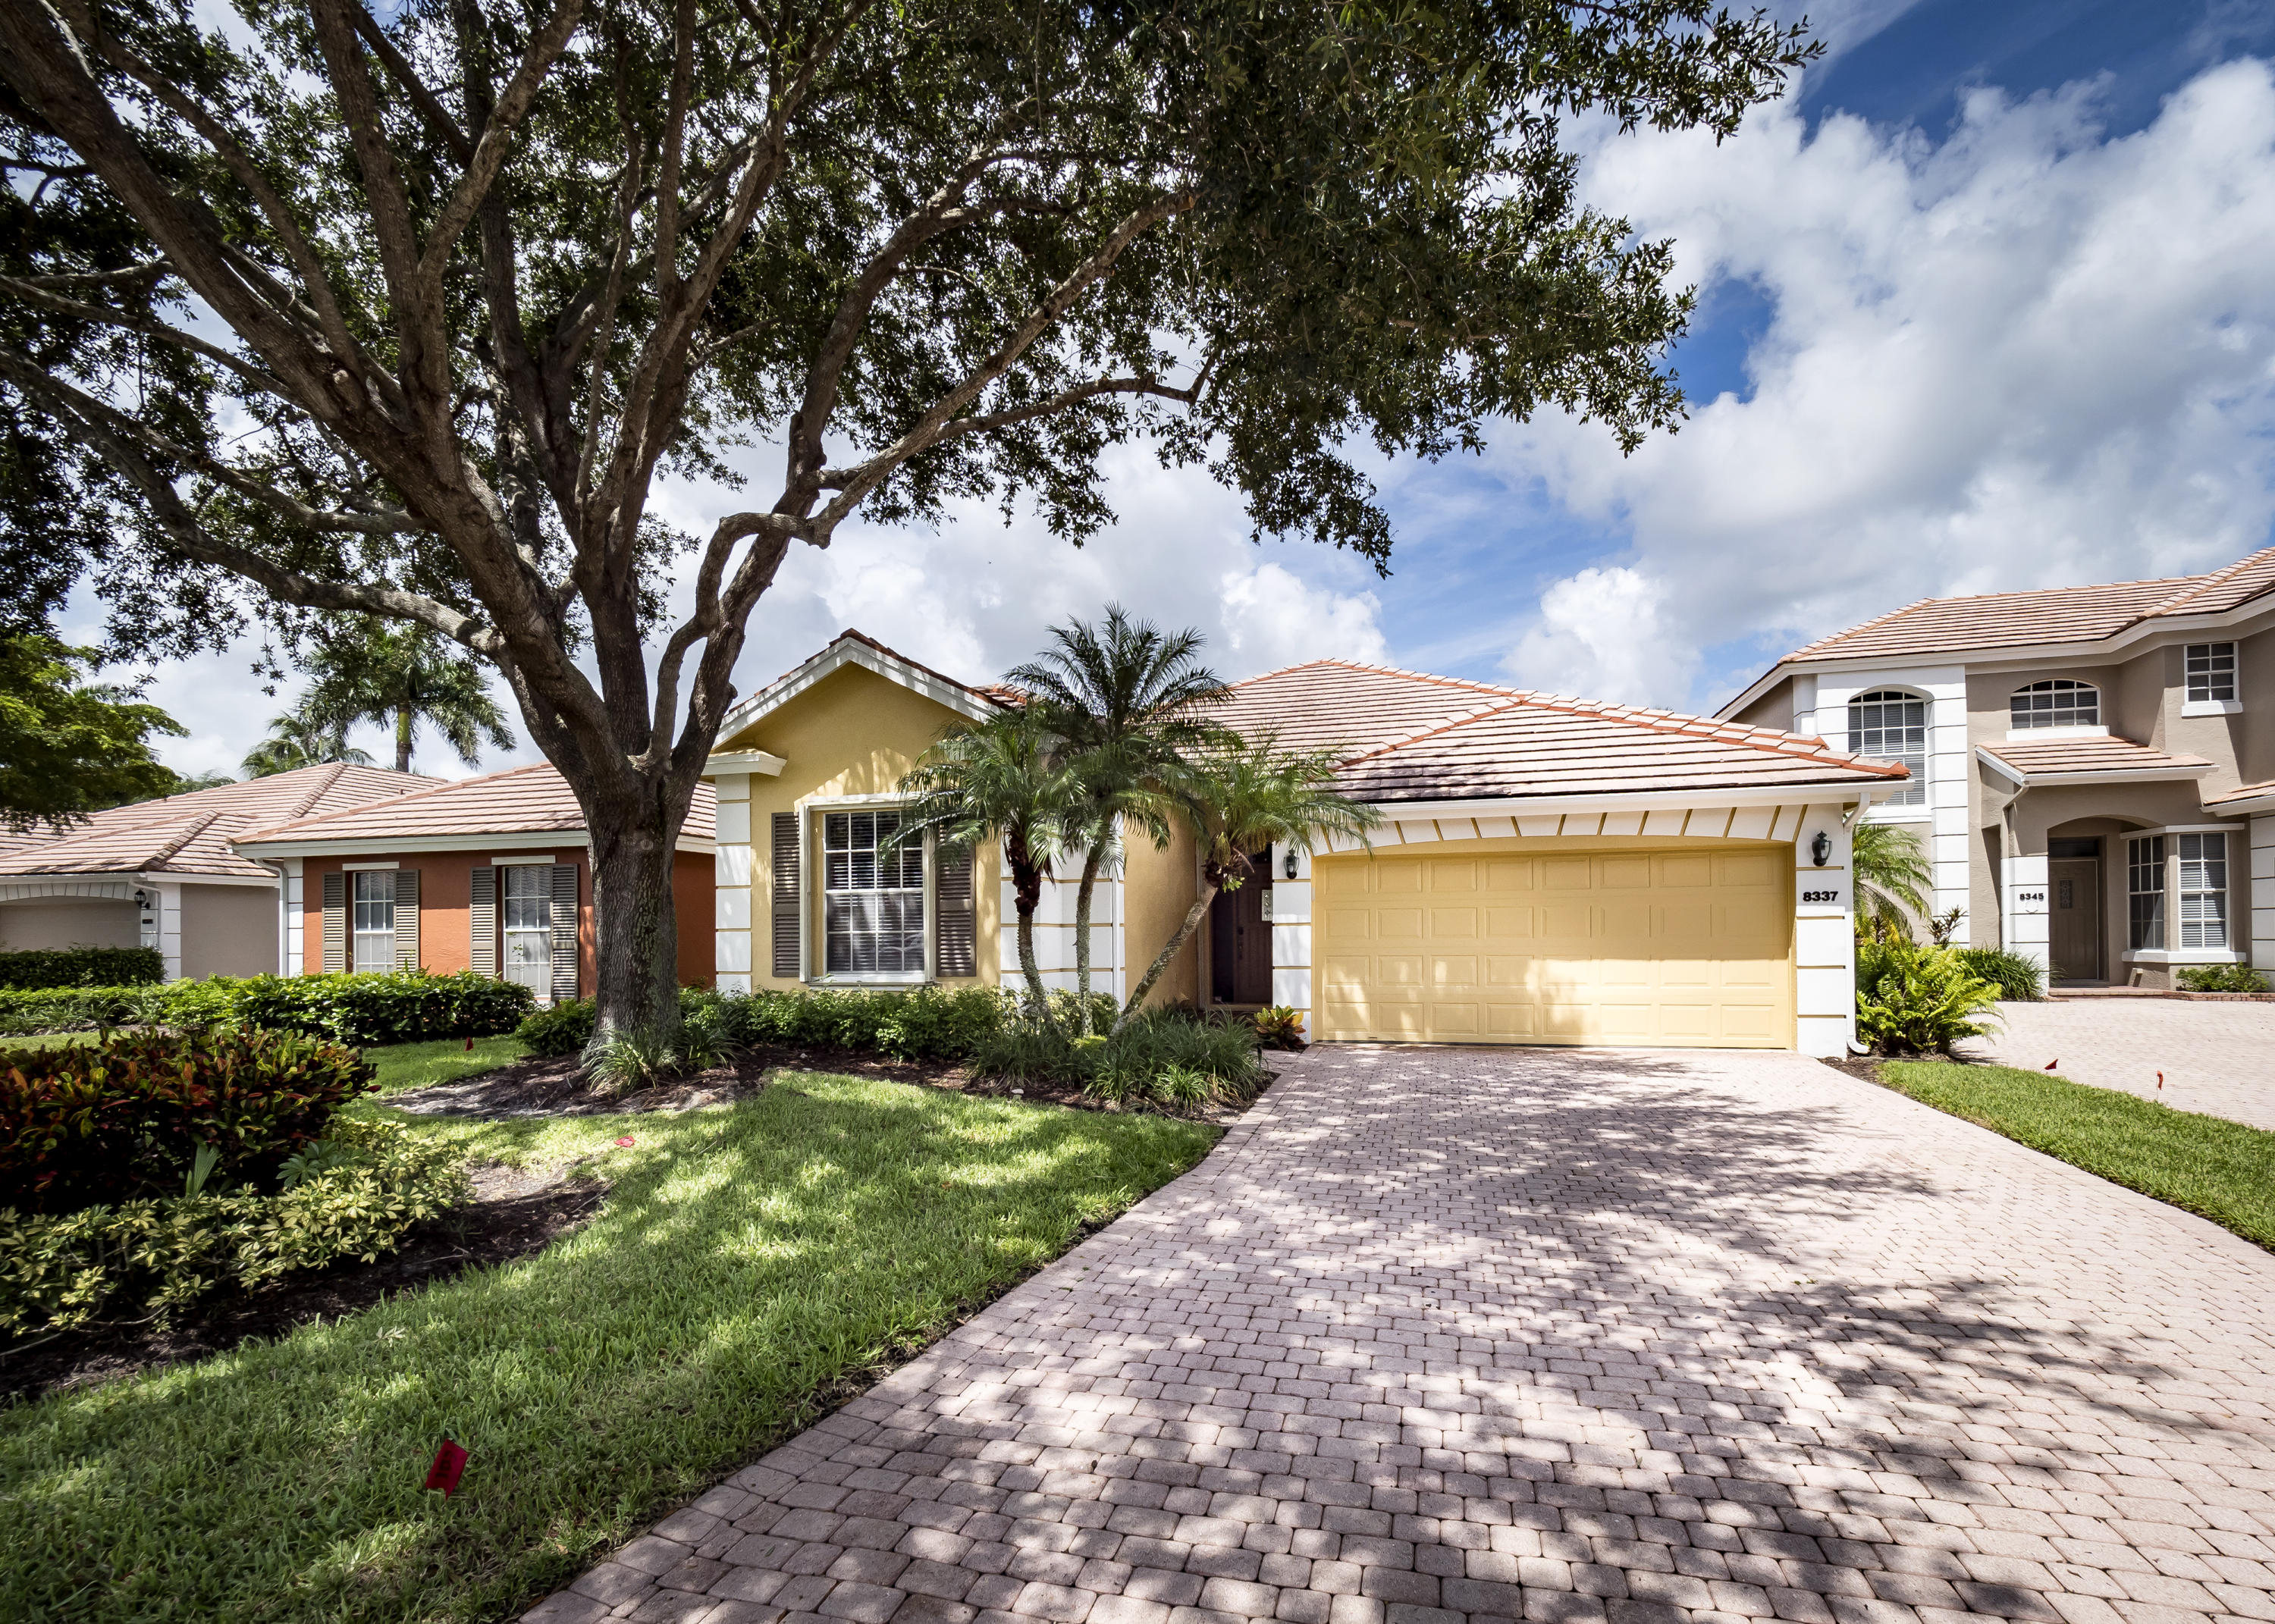 8337 Heritage Club Drive, West Palm Beach, Florida 33412, 3 Bedrooms Bedrooms, ,2 BathroomsBathrooms,A,Single family,Heritage Club,RX-10455074